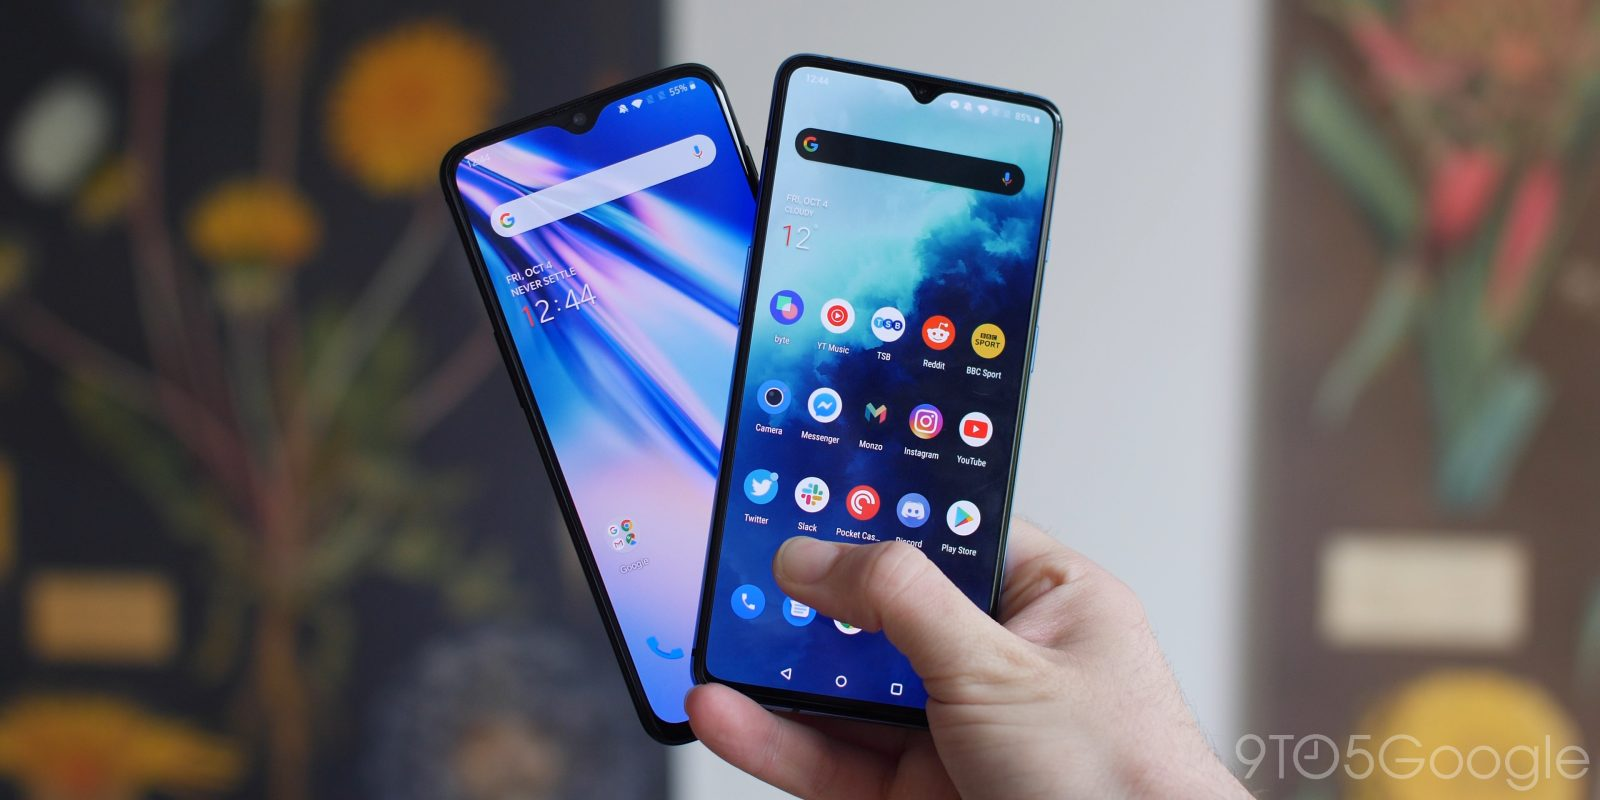 OnePlus 6T vs OnePlus 7T: Worth the upgrade? [Video]